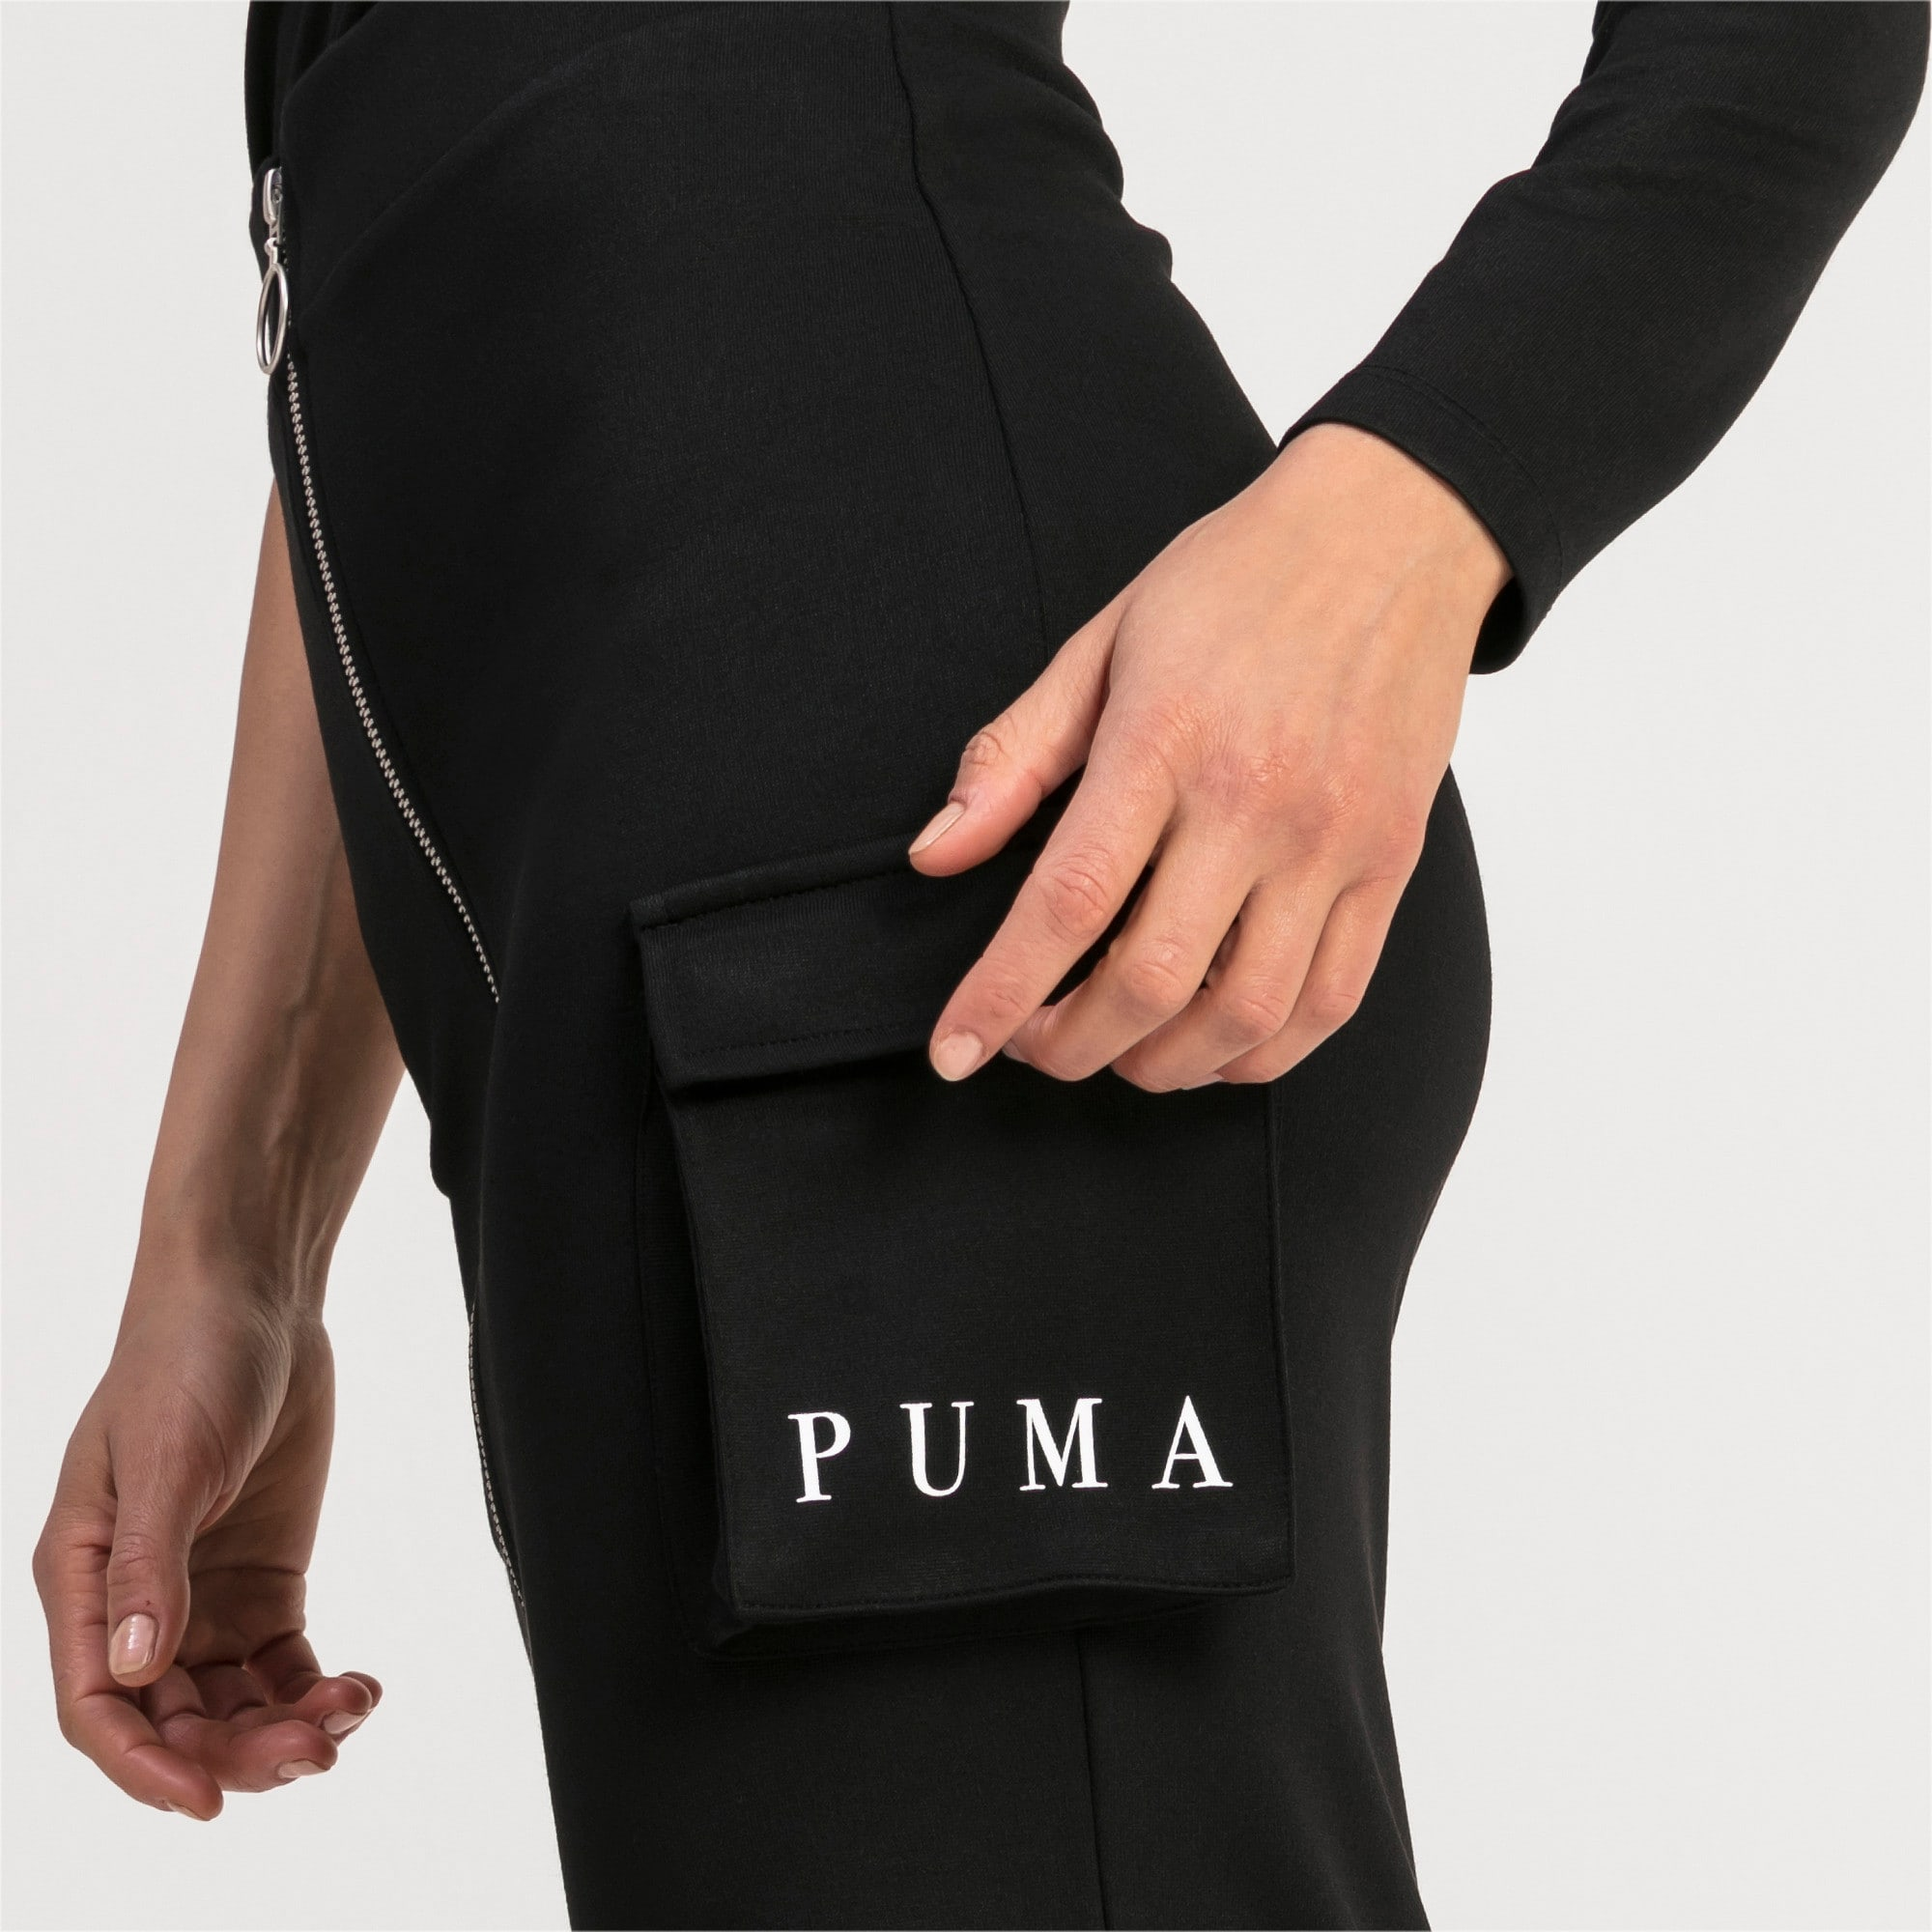 Thumbnail 2 of Damen Midi Rock, Puma Black, medium